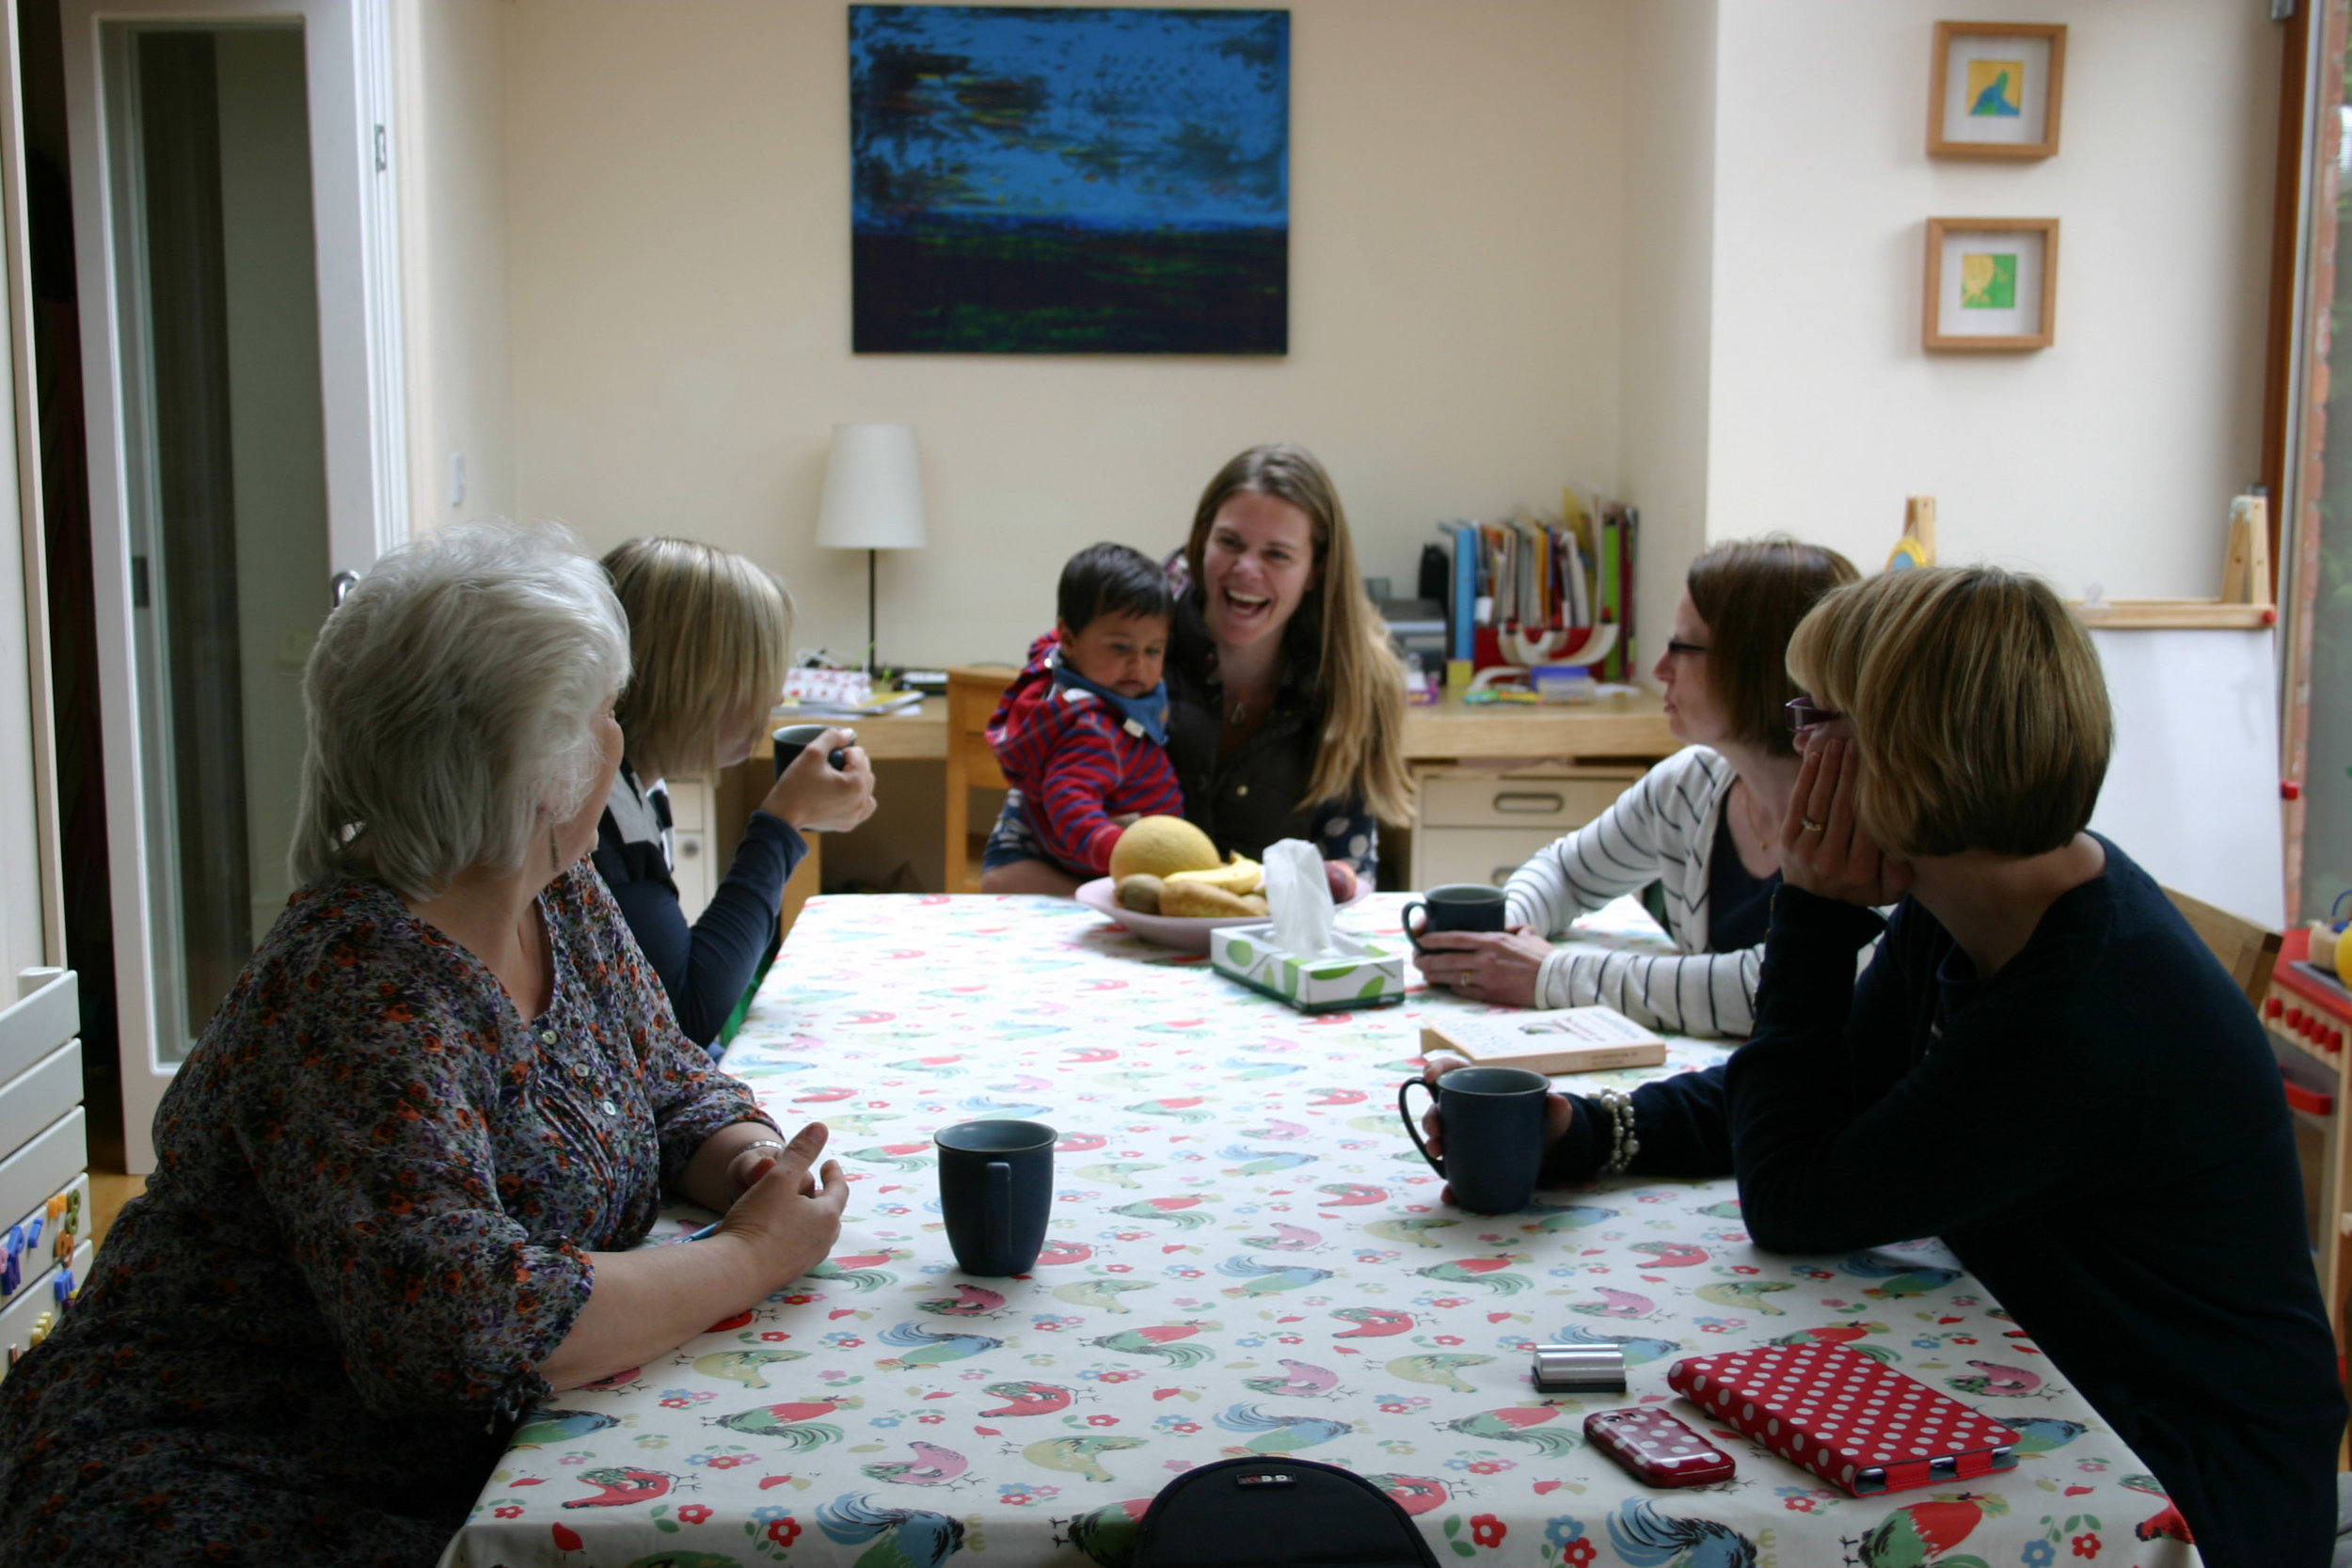 st-johns-harborne-groups-talk-together-web.jpg